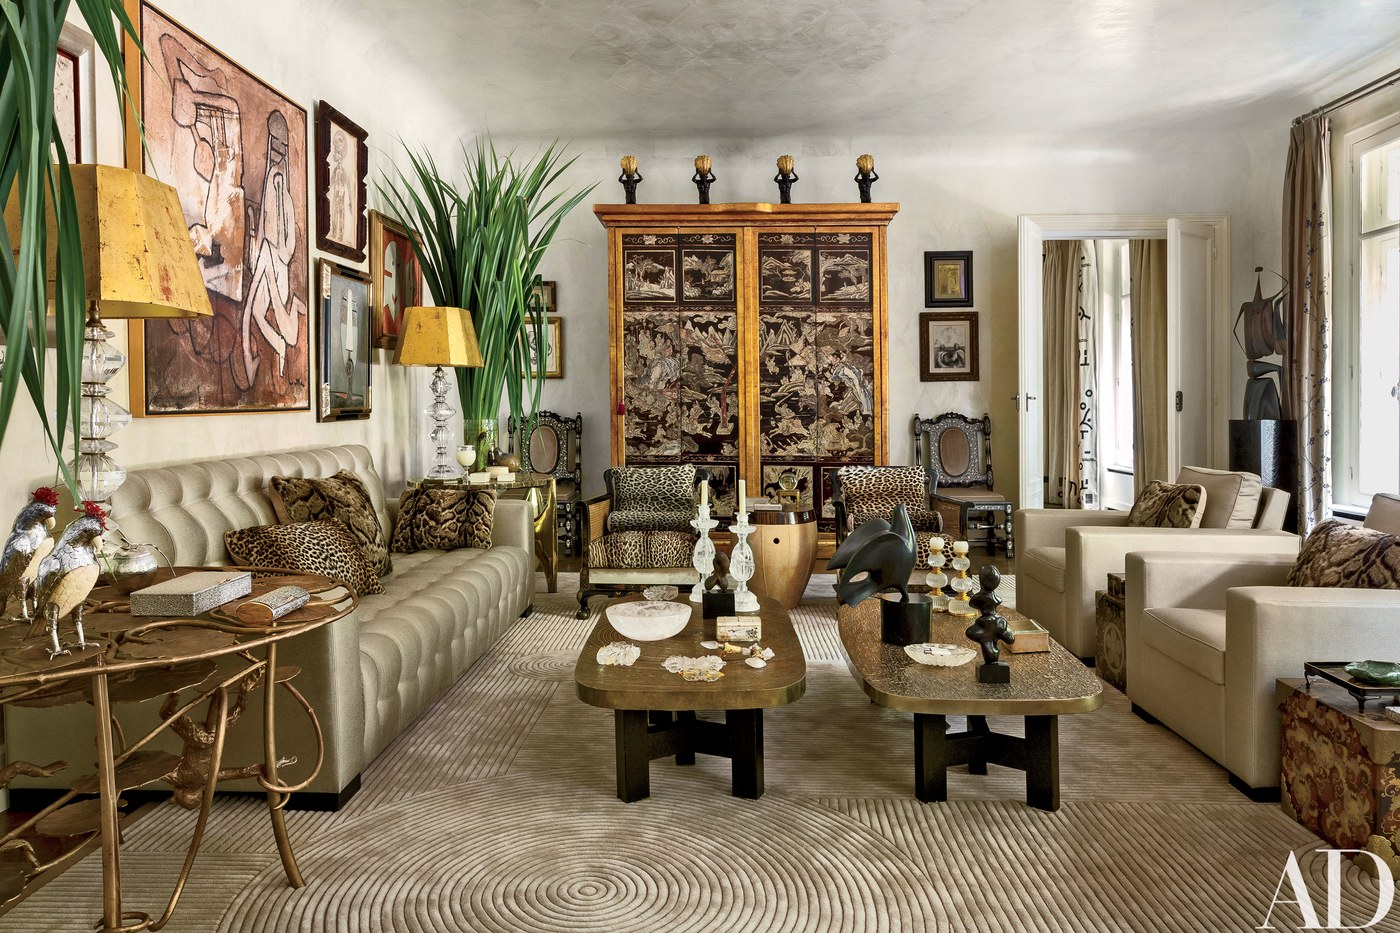 linda pinto photo via architectural digest - top interior designers - design partners - living room ideas top interior designers When Top Interior Designers Partner linda pinto via AD